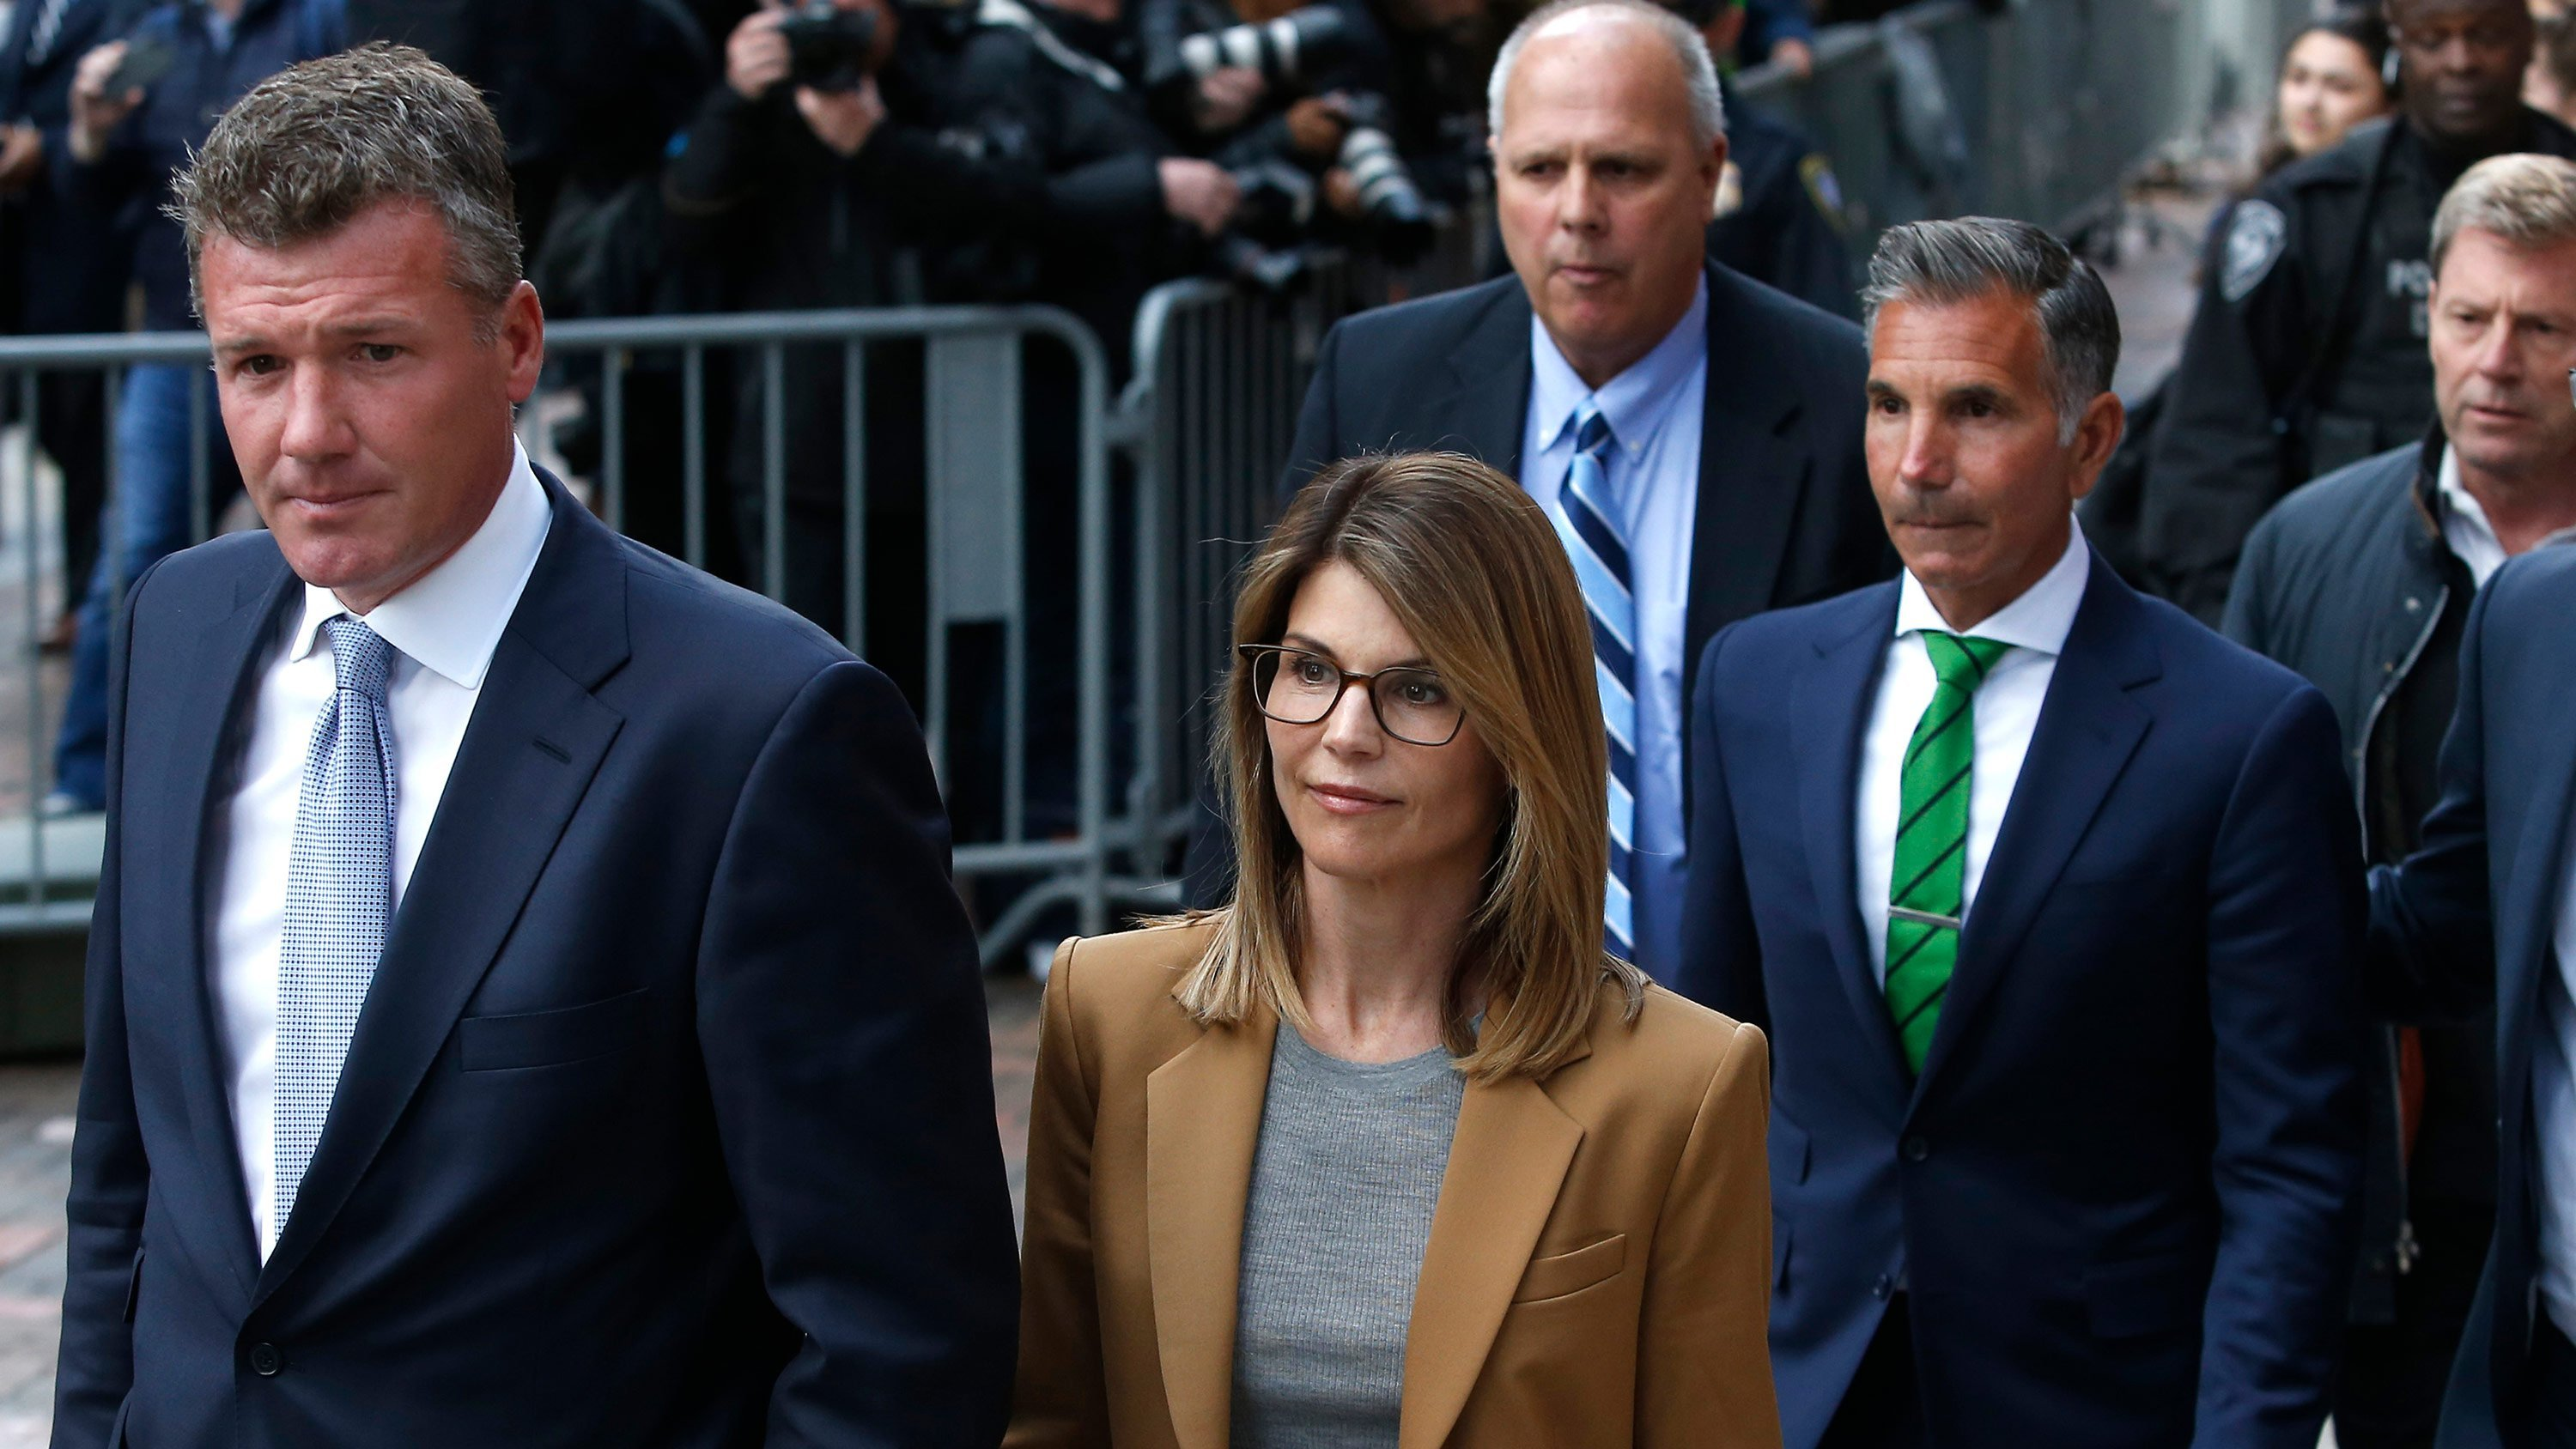 College Admissions Scam: Lori Loughlin, Other Parents Indicted on New Bribery Charge